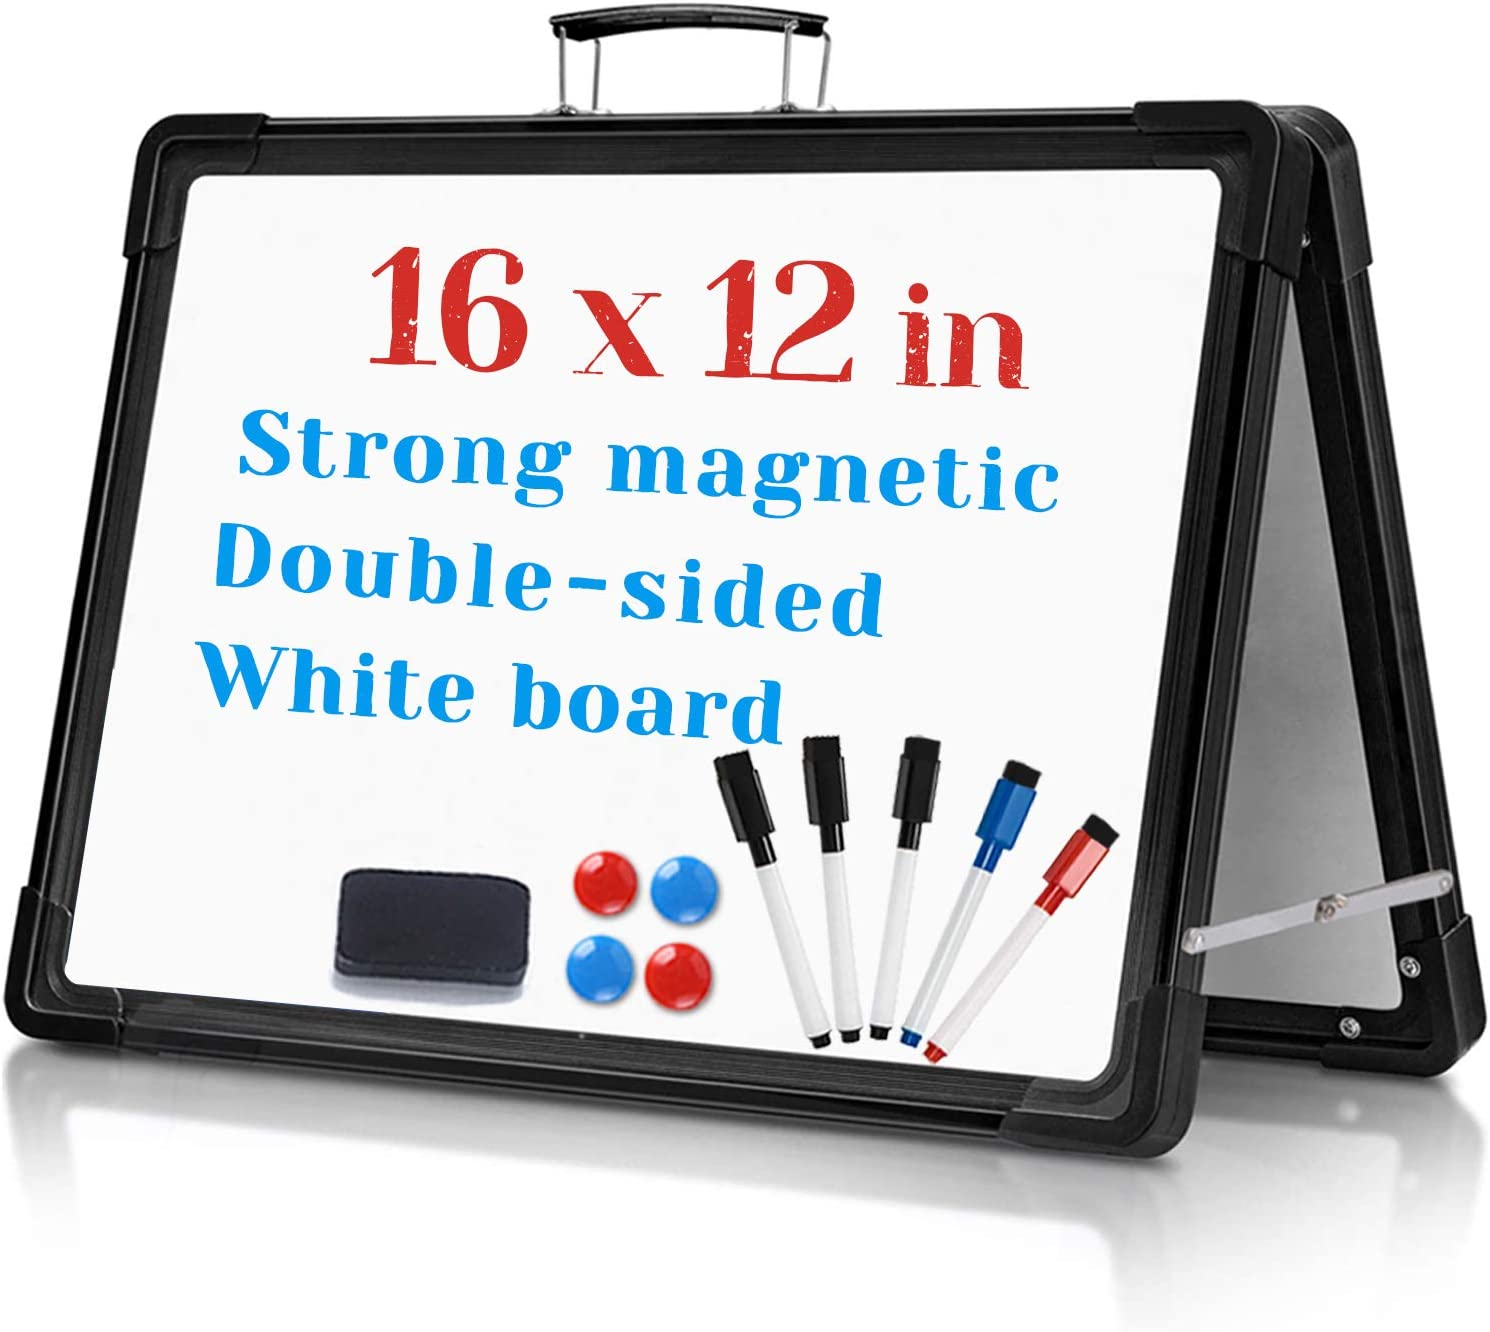 Mini Dry-Erase Board, 16x12 Inches Small Portable Foldable Desktop Magnetic-Whiteboard, Small Double Sided with Stand White Board Easel, for Kids Students Drawing Teaching Memo Office Home,Black